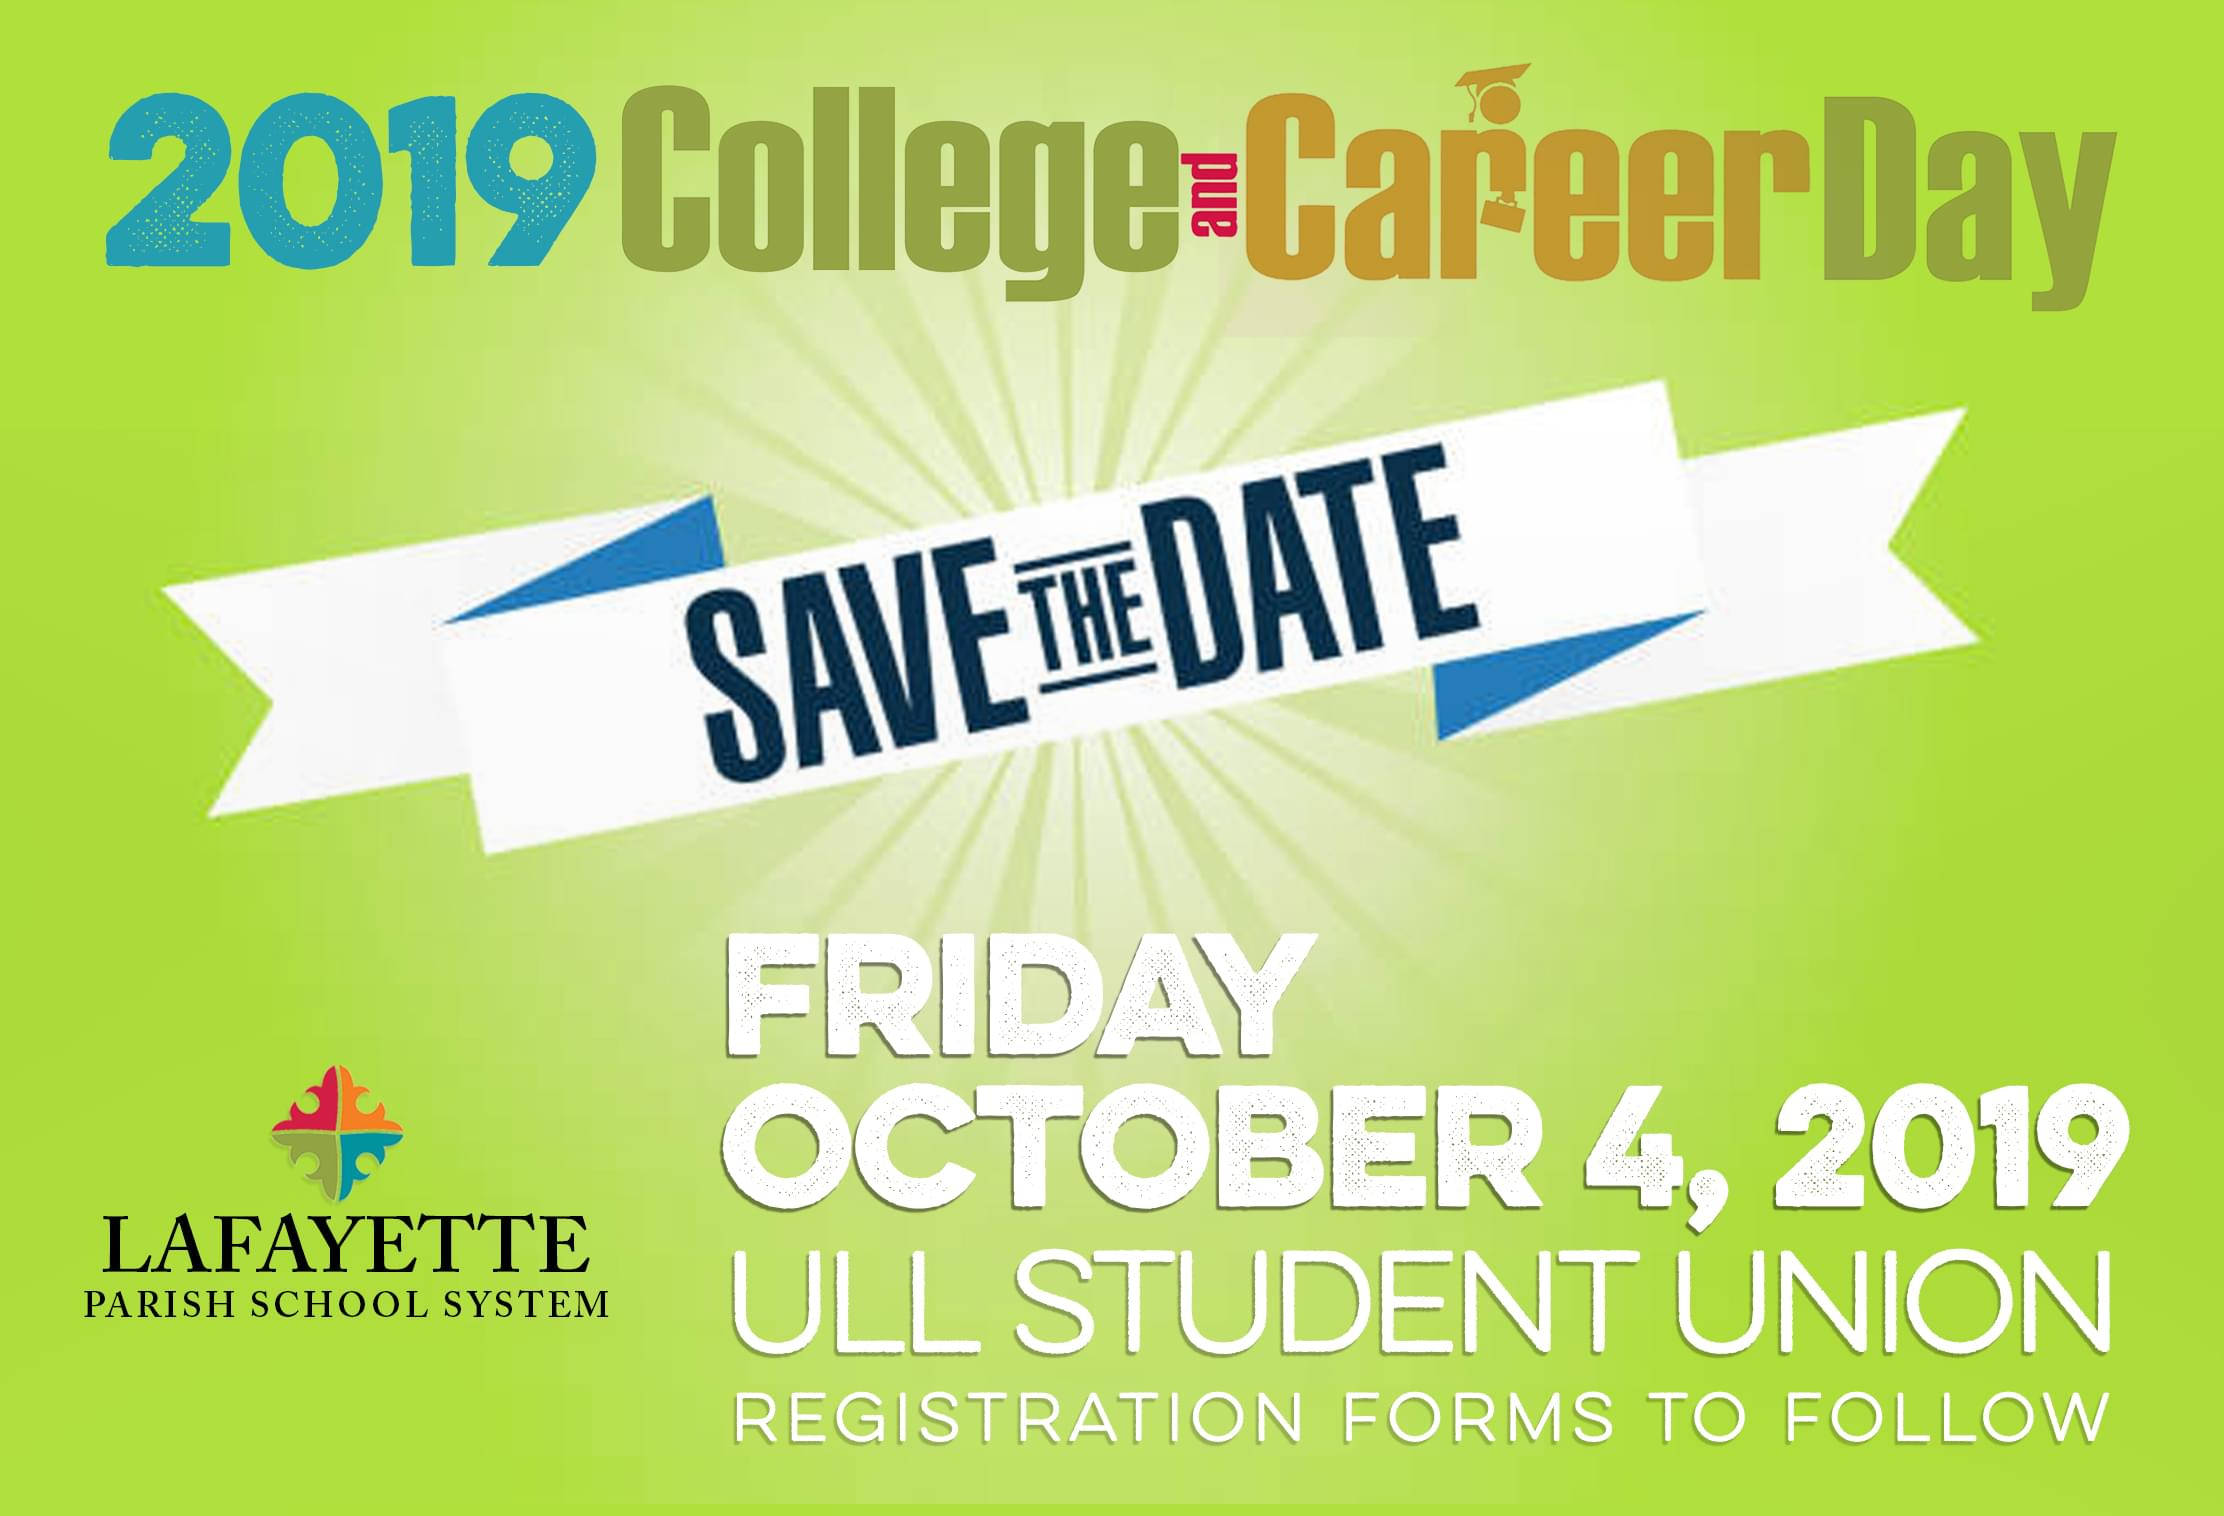 2019 College and Career Day